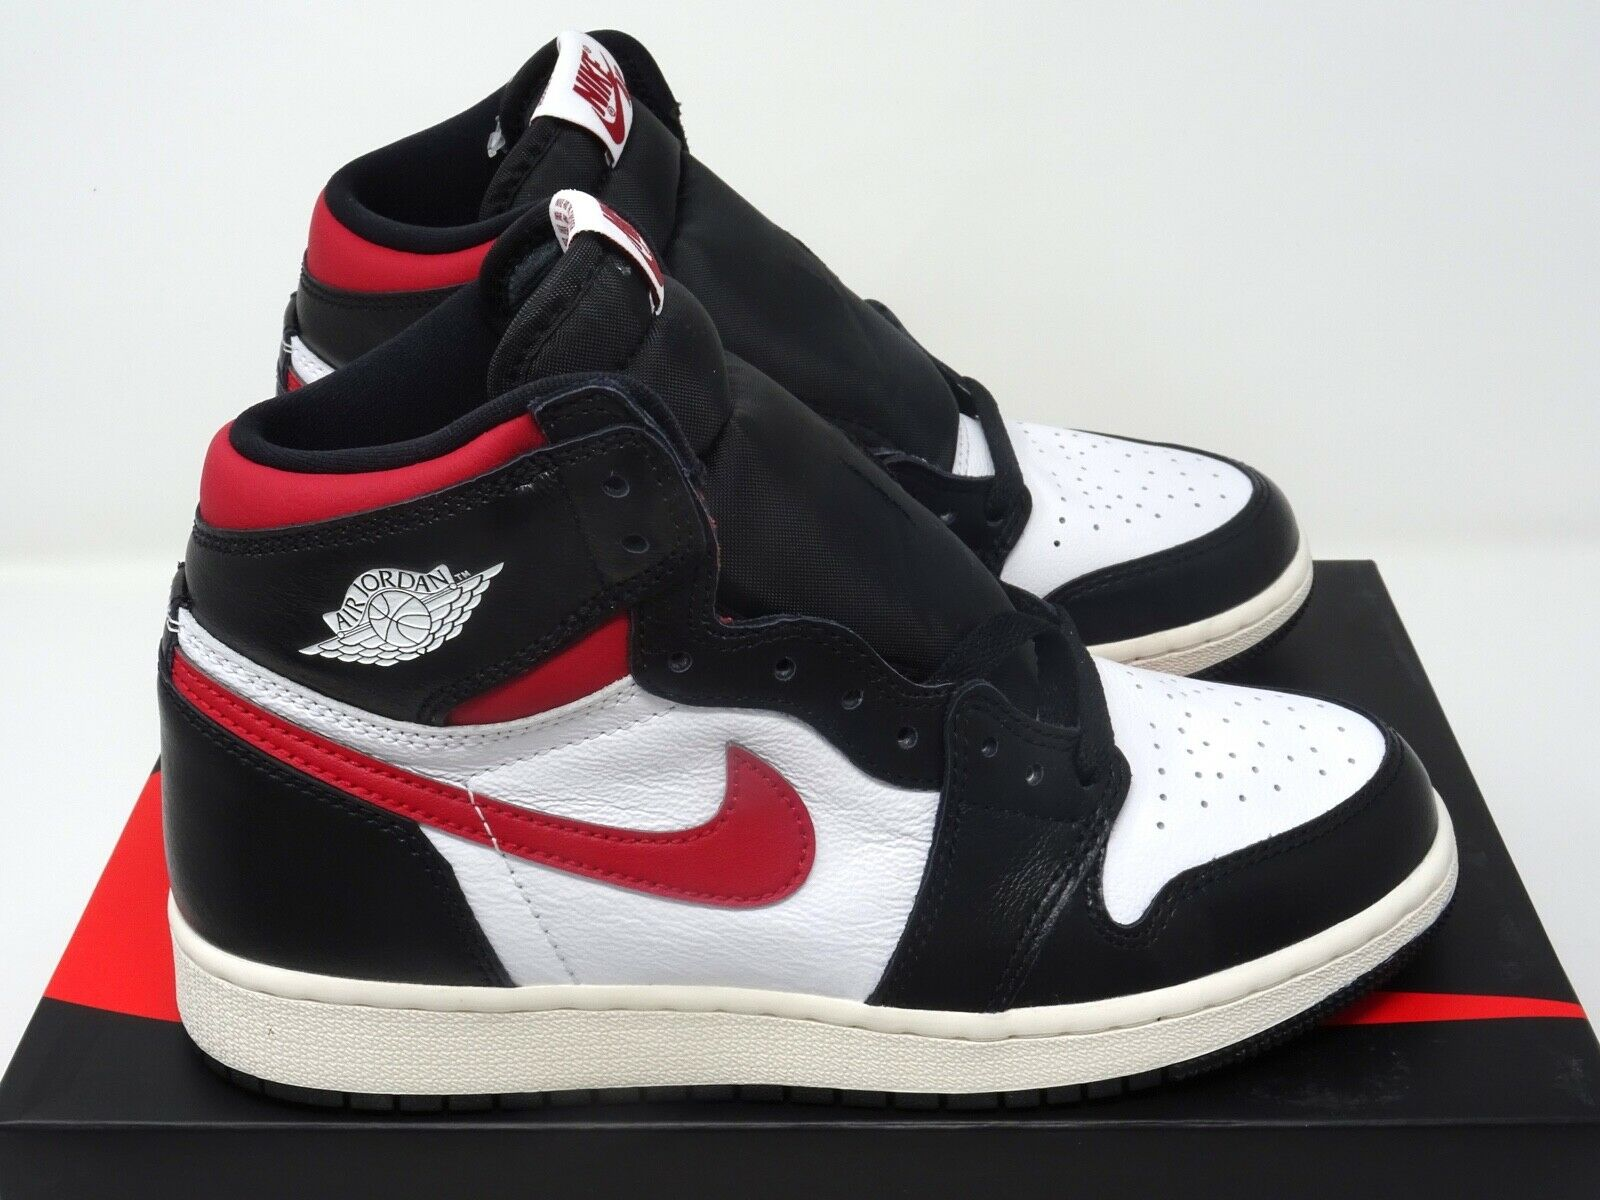 4e8aa0d26e Nike Air Jordan 1 Retro High GS Black Gym Red White UK 3 4 5 6 US